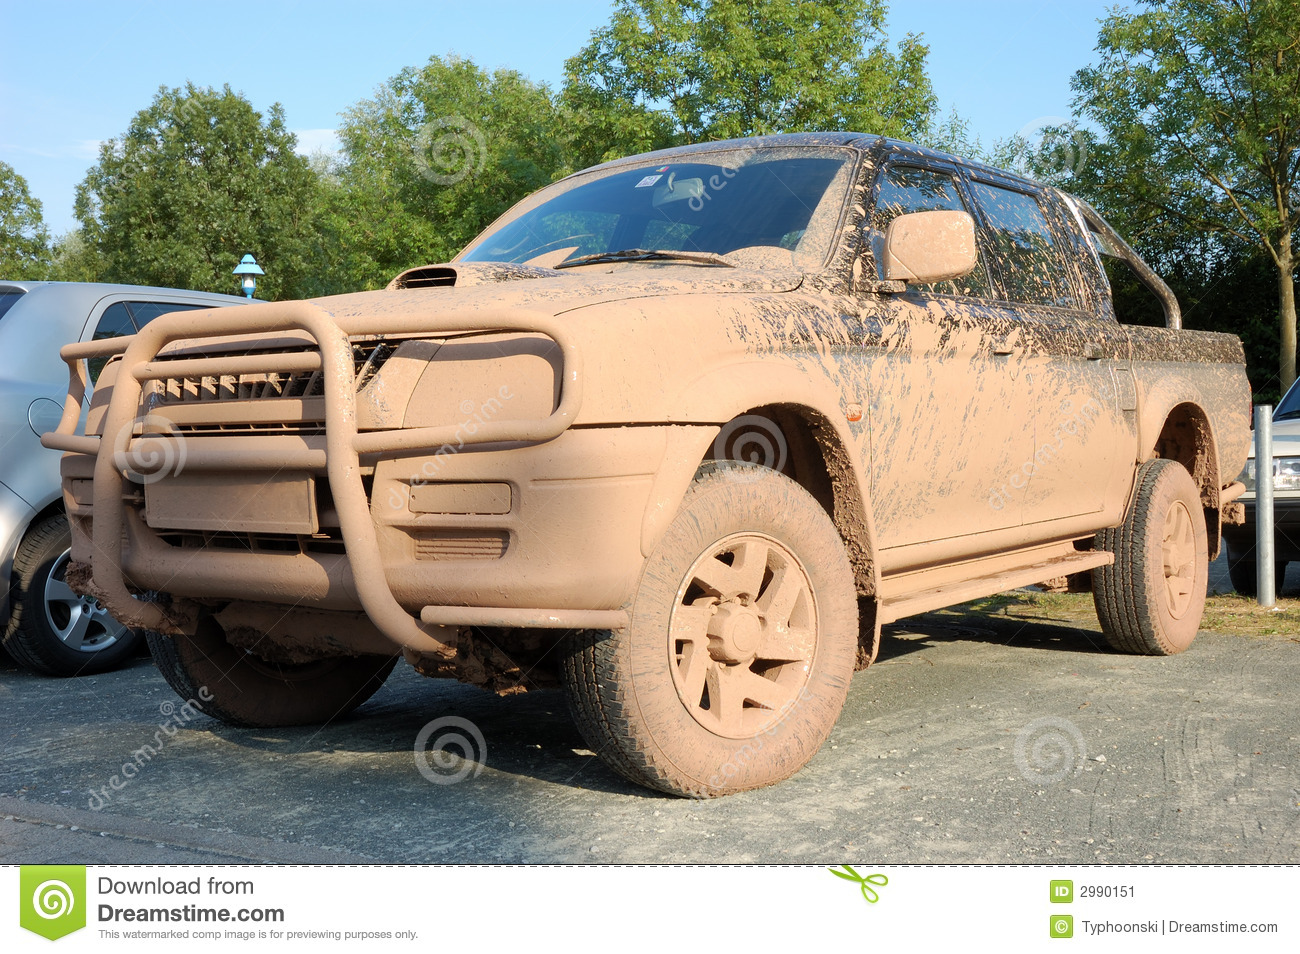 dirty offroad car stock image image of dirt tires muddy 2990151. Black Bedroom Furniture Sets. Home Design Ideas